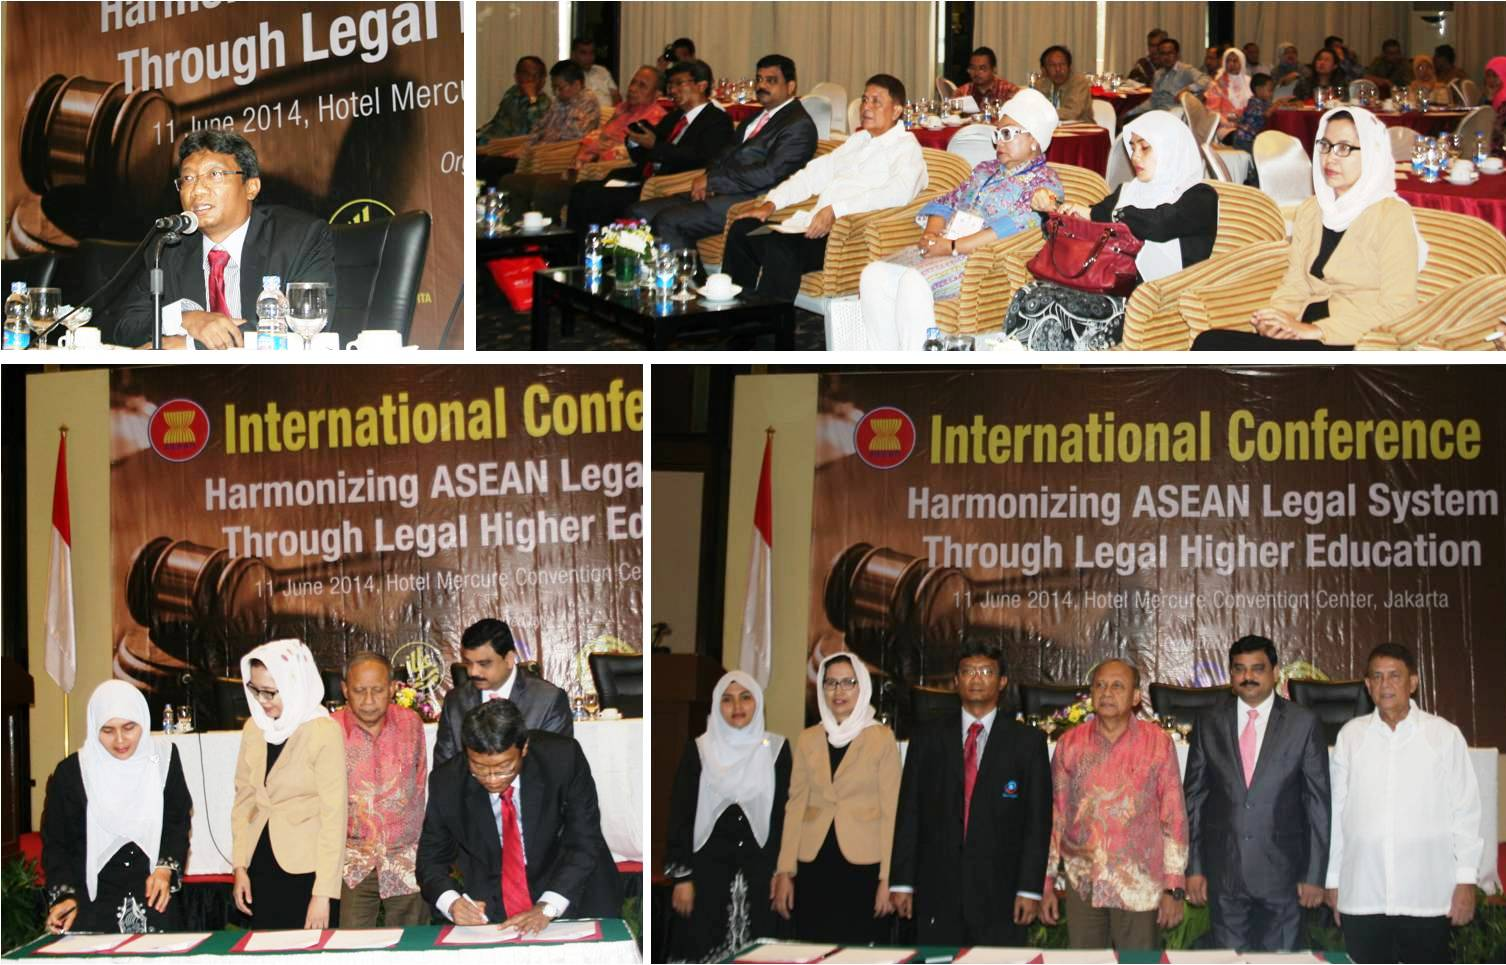 International Conference: Harmonizing ASEAN Legal System through Legal Higher Education